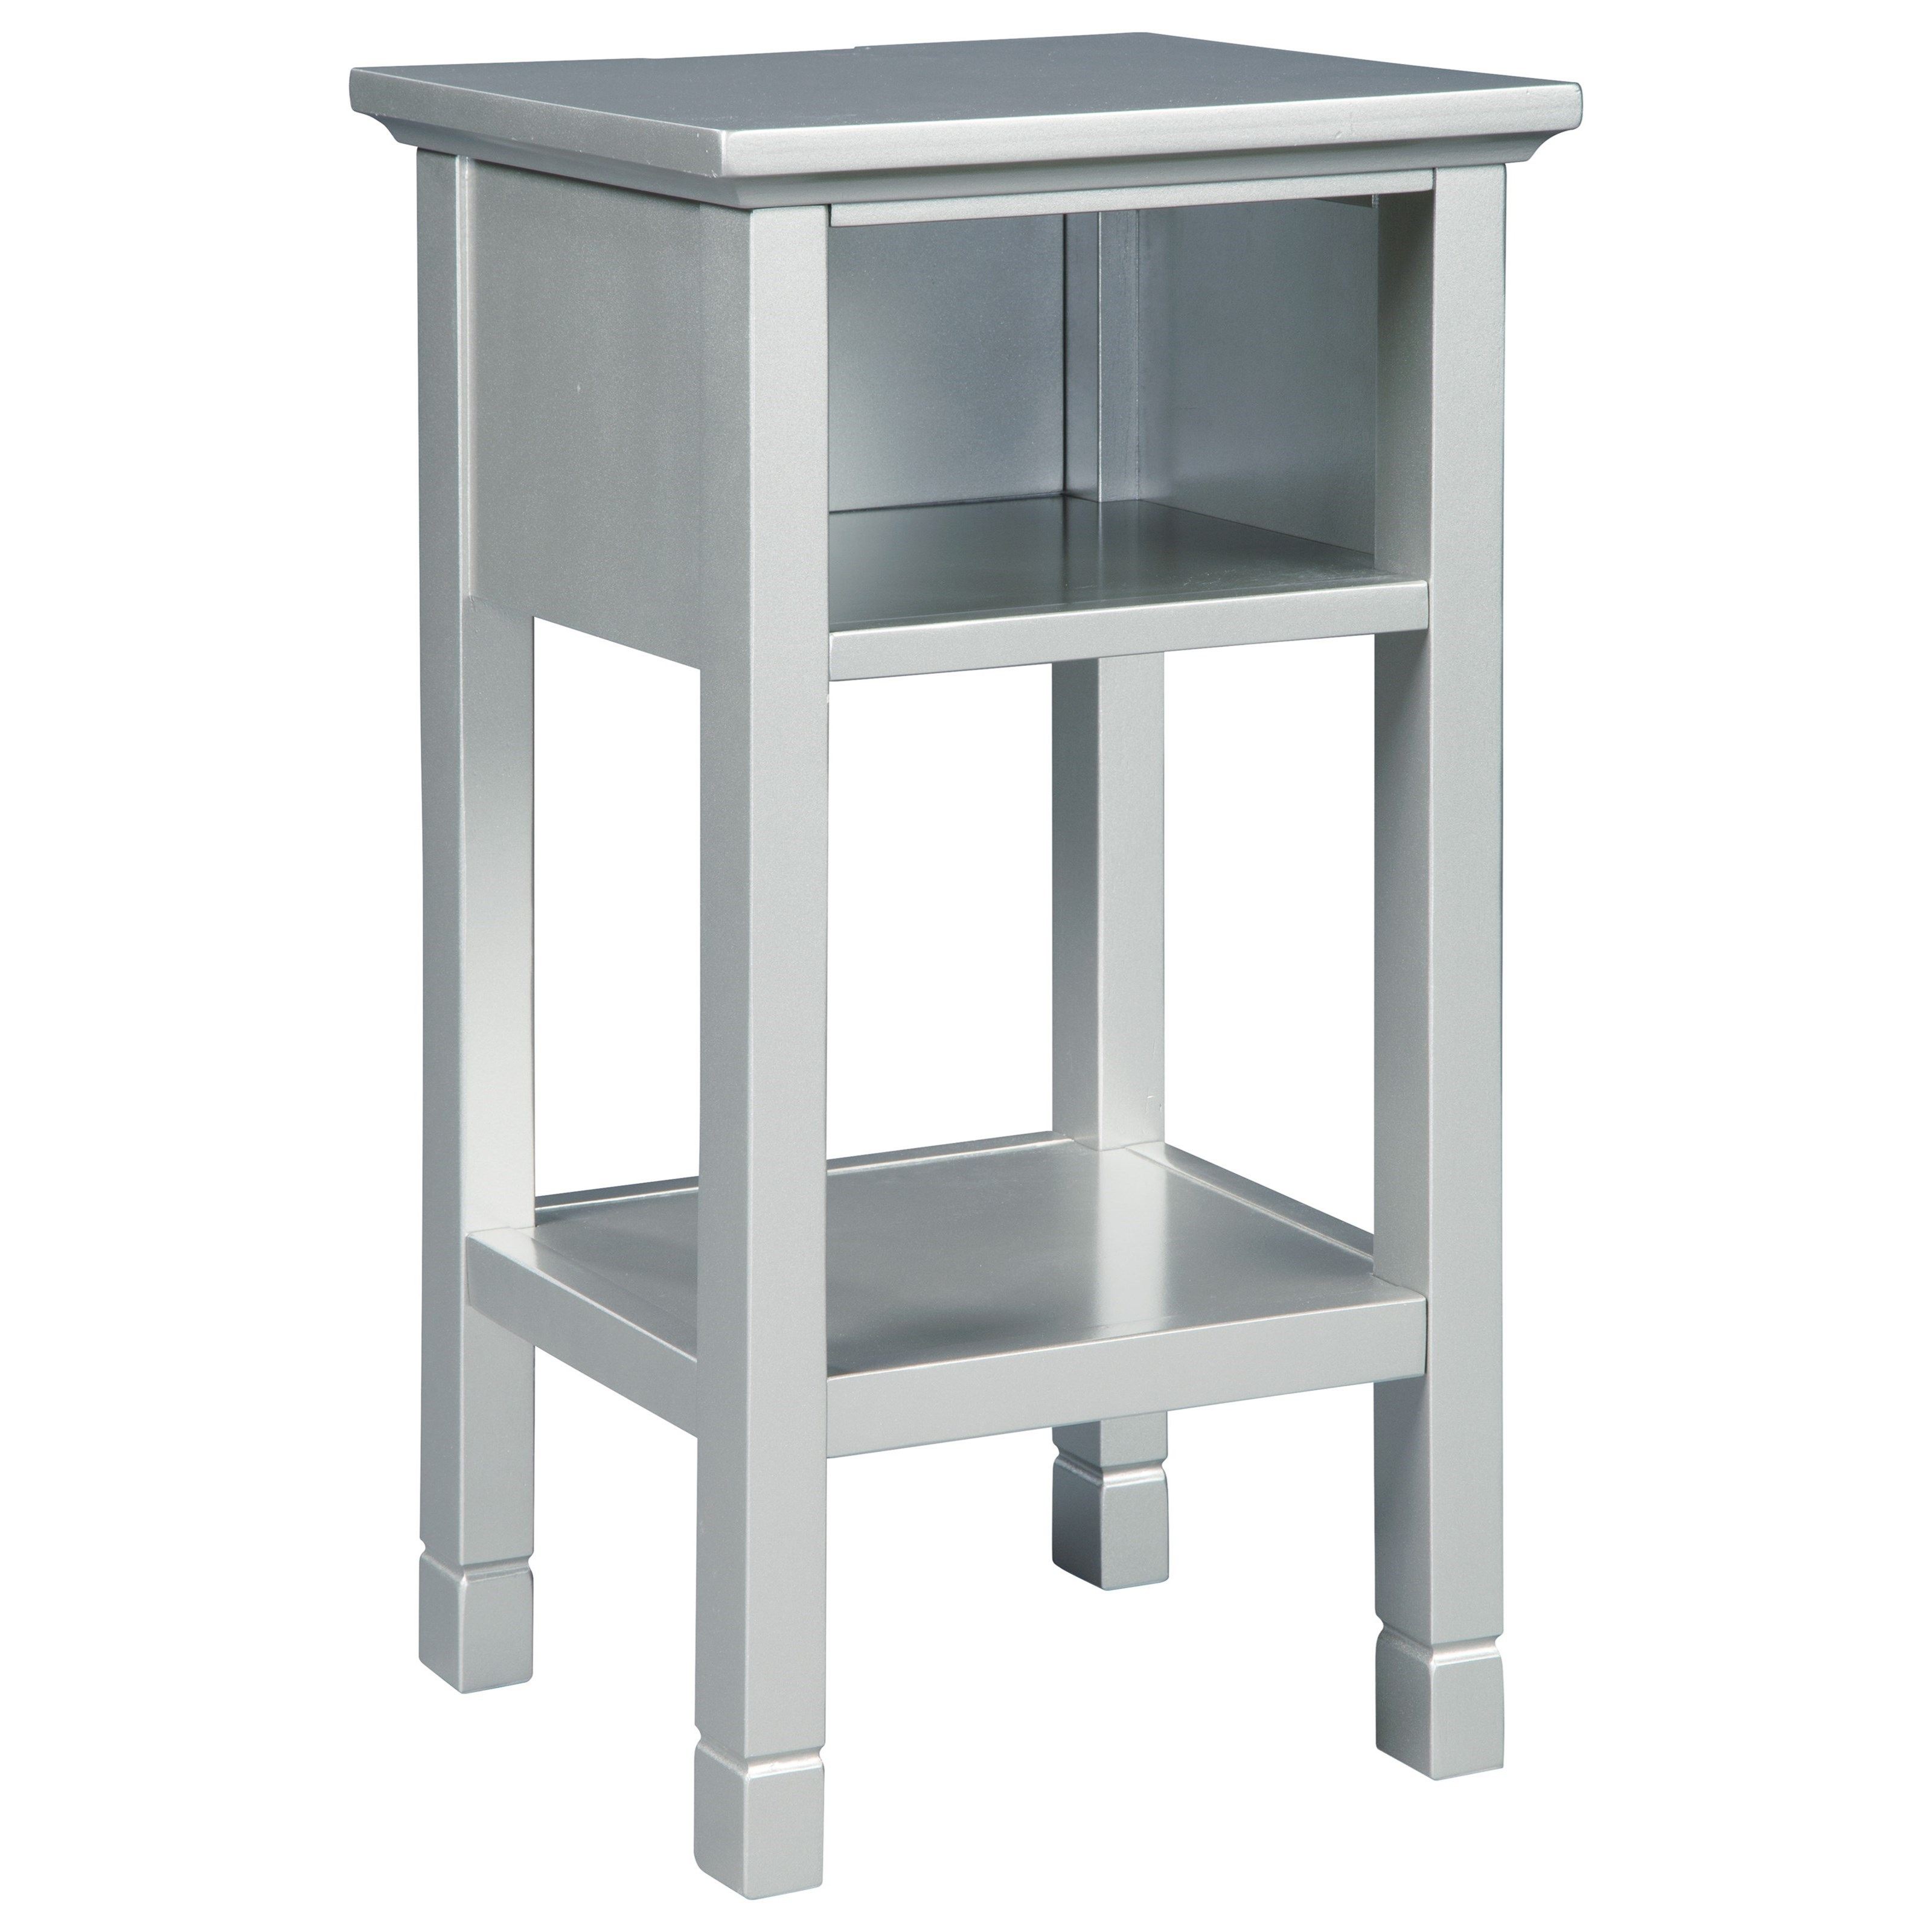 Contemporary Accent Table with Cubby & Shelf